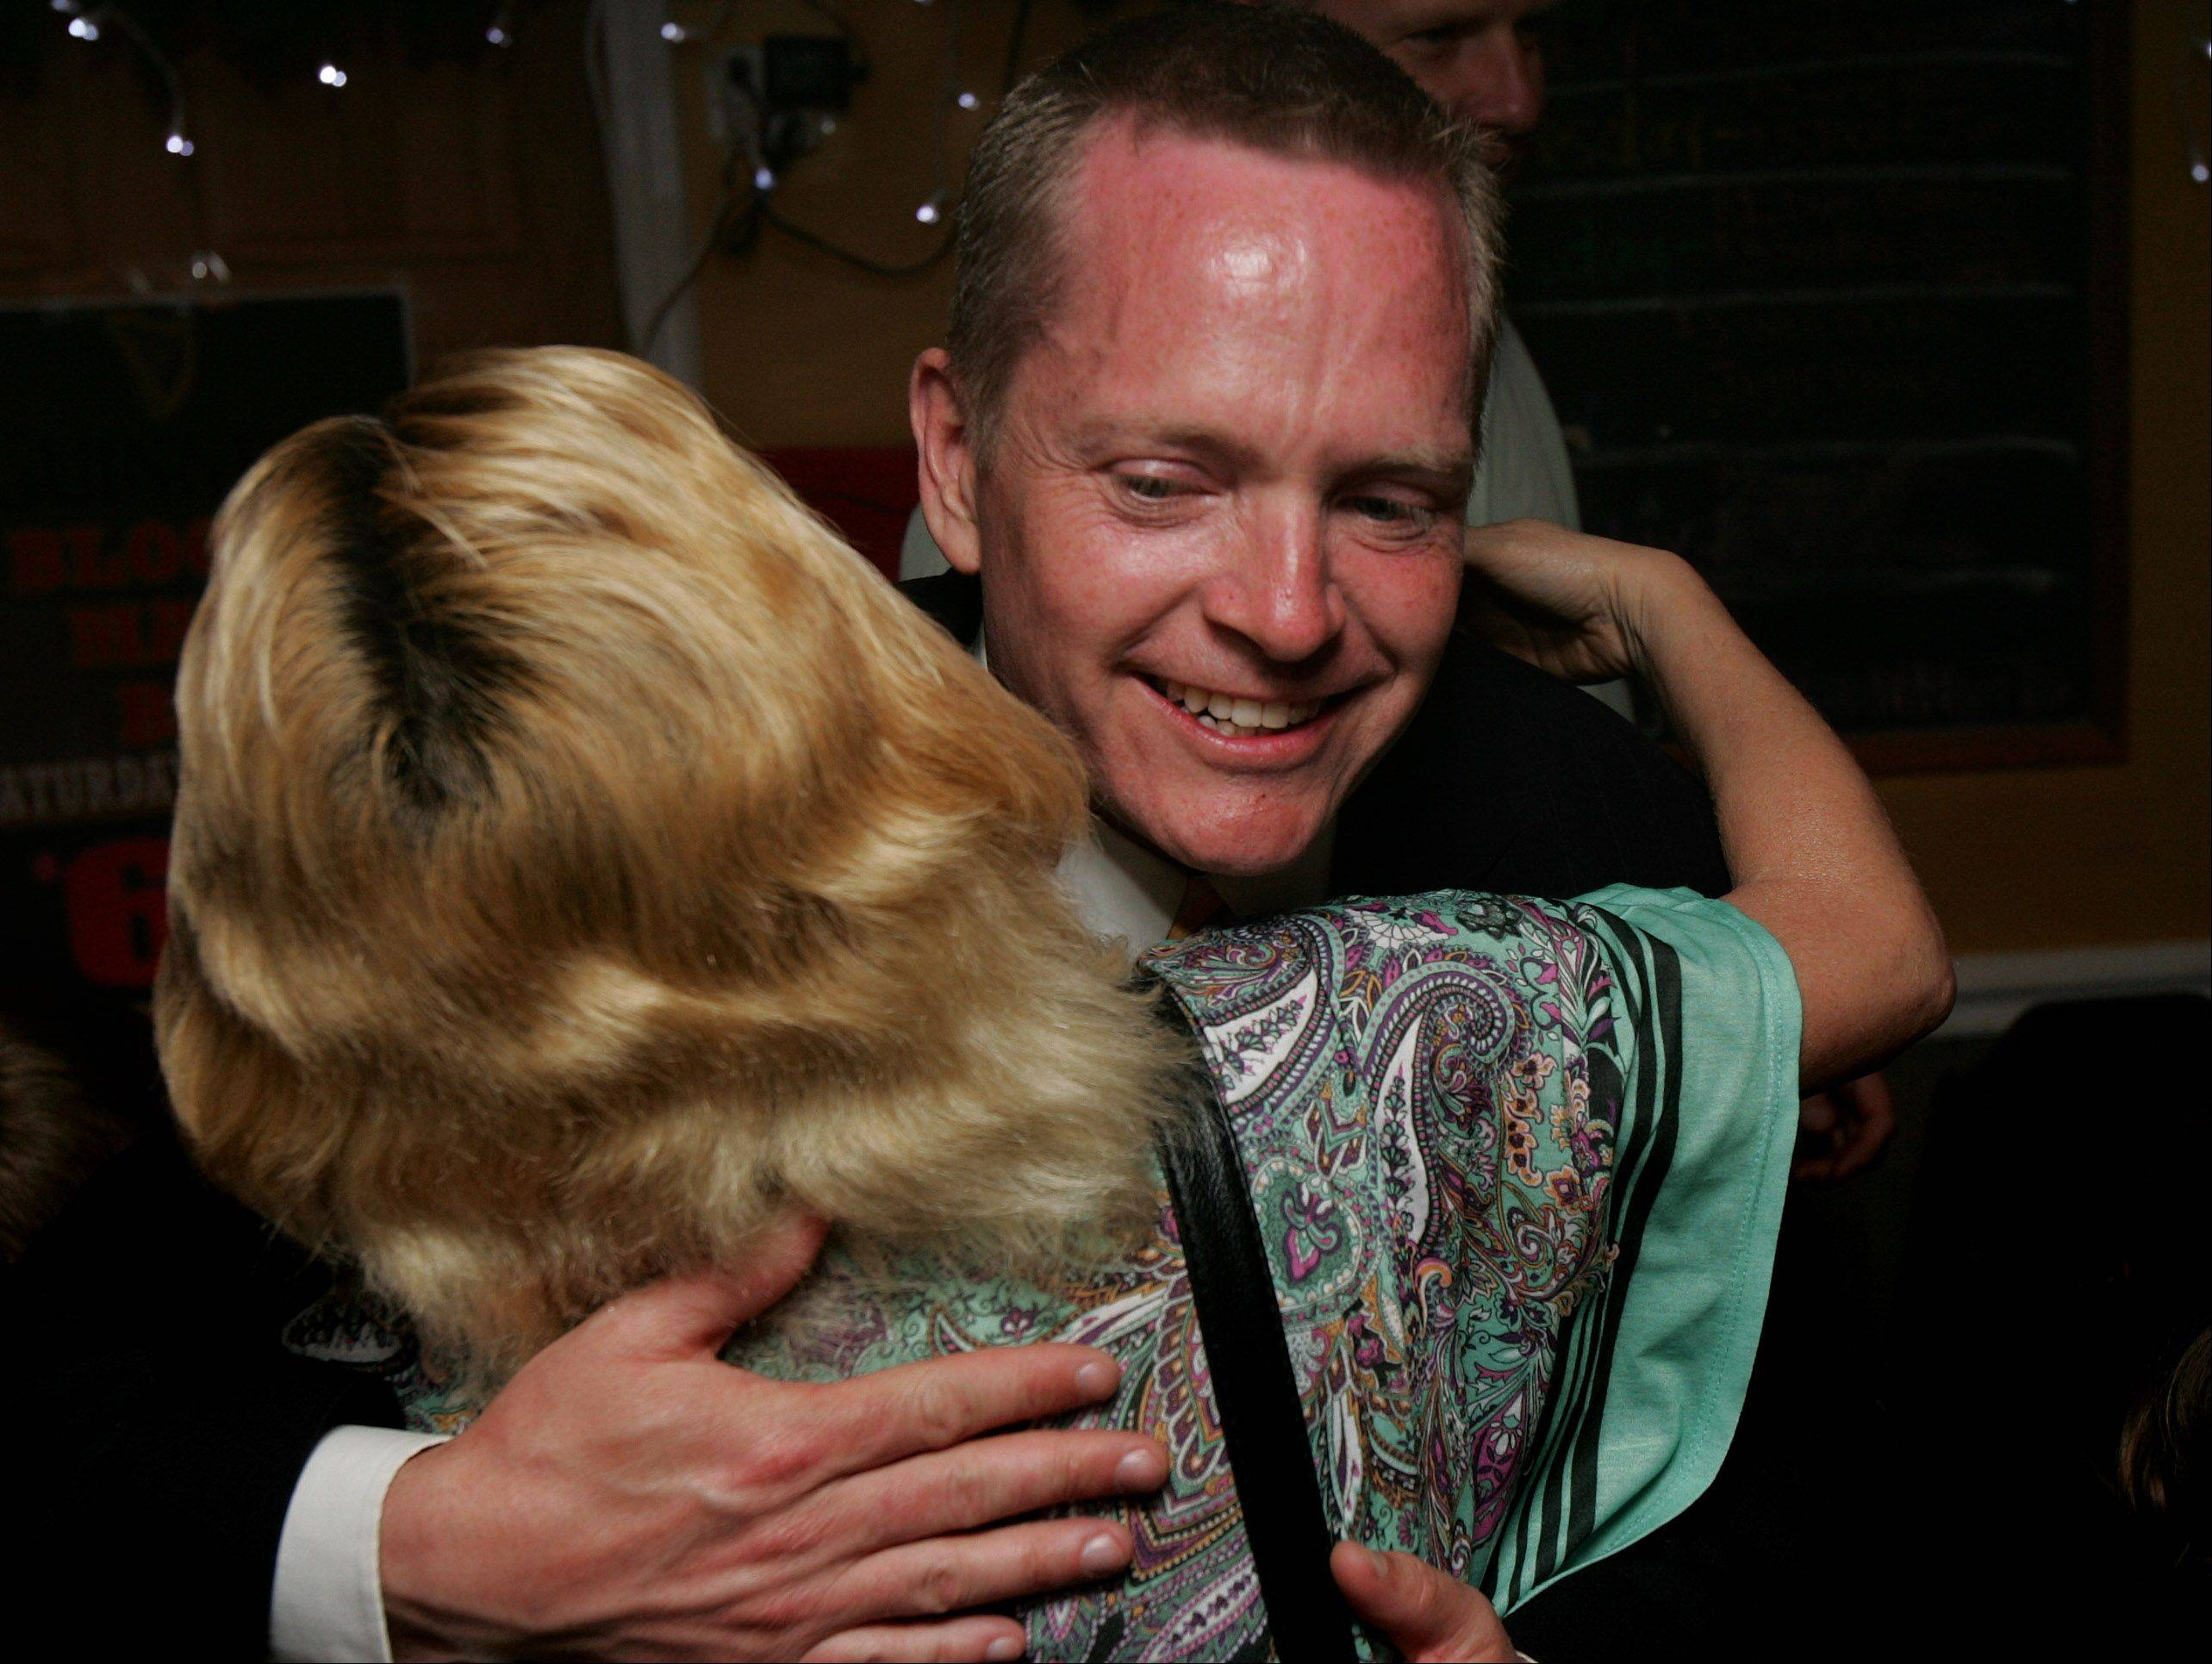 Republican primary candidate Joe Neal hugs Rita Praefke, of Racine, as she congratulates him Tuesday at the Savanna House restaurant in Wadsworth for his win in the primary for the 31st Senate District seat.